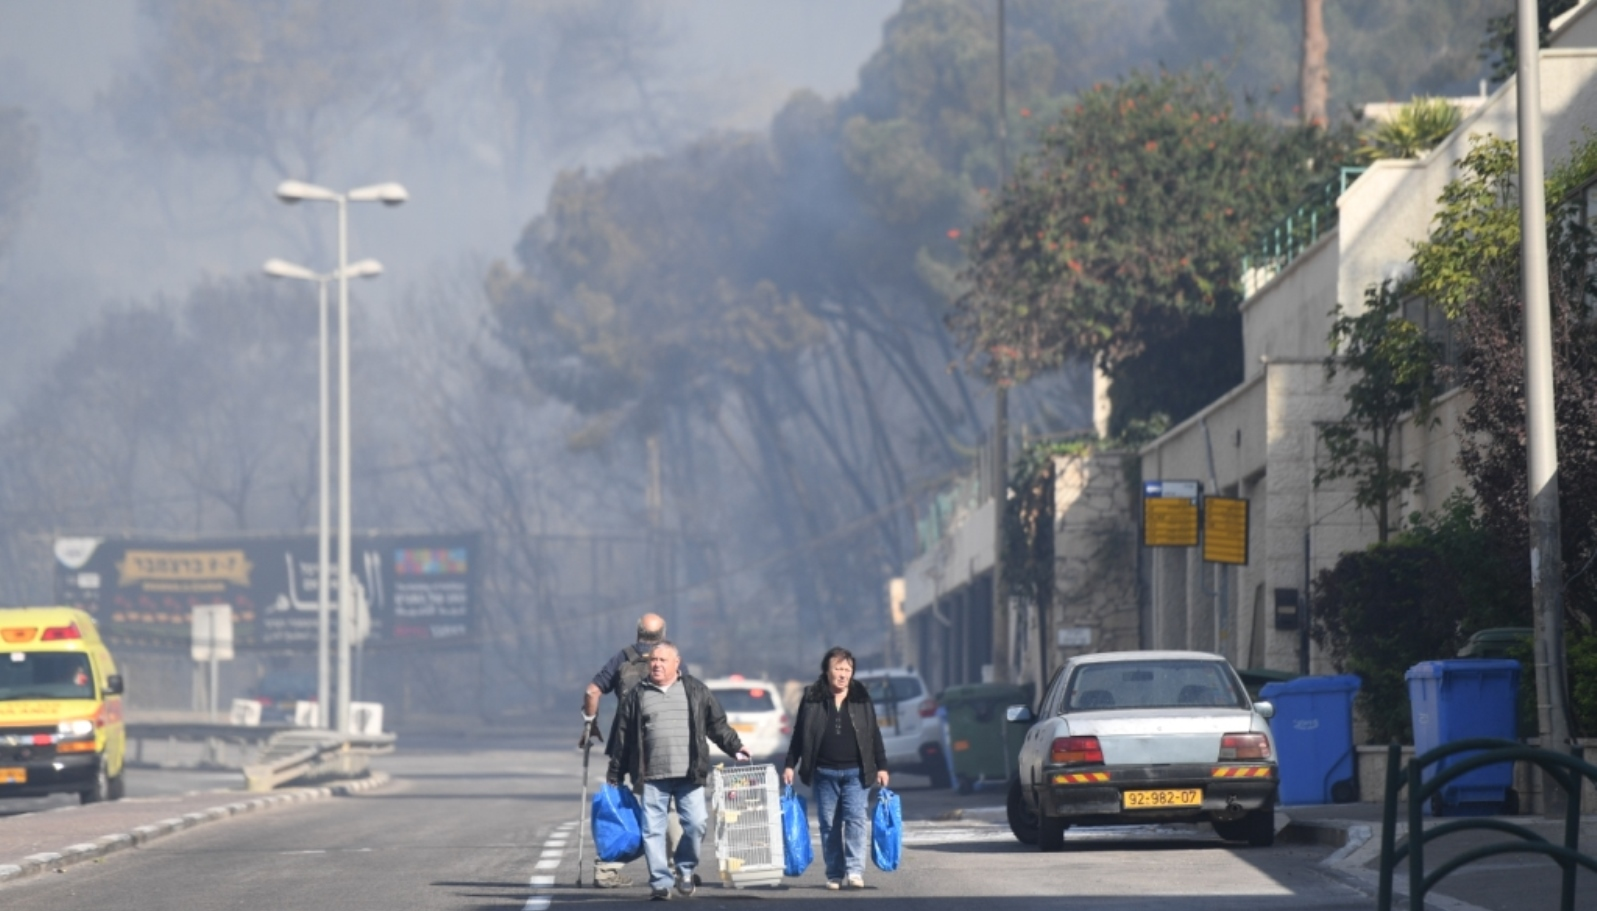 Haifa citizens fleeing the fires, November 2016. Photo courtesy of Haifa municipality